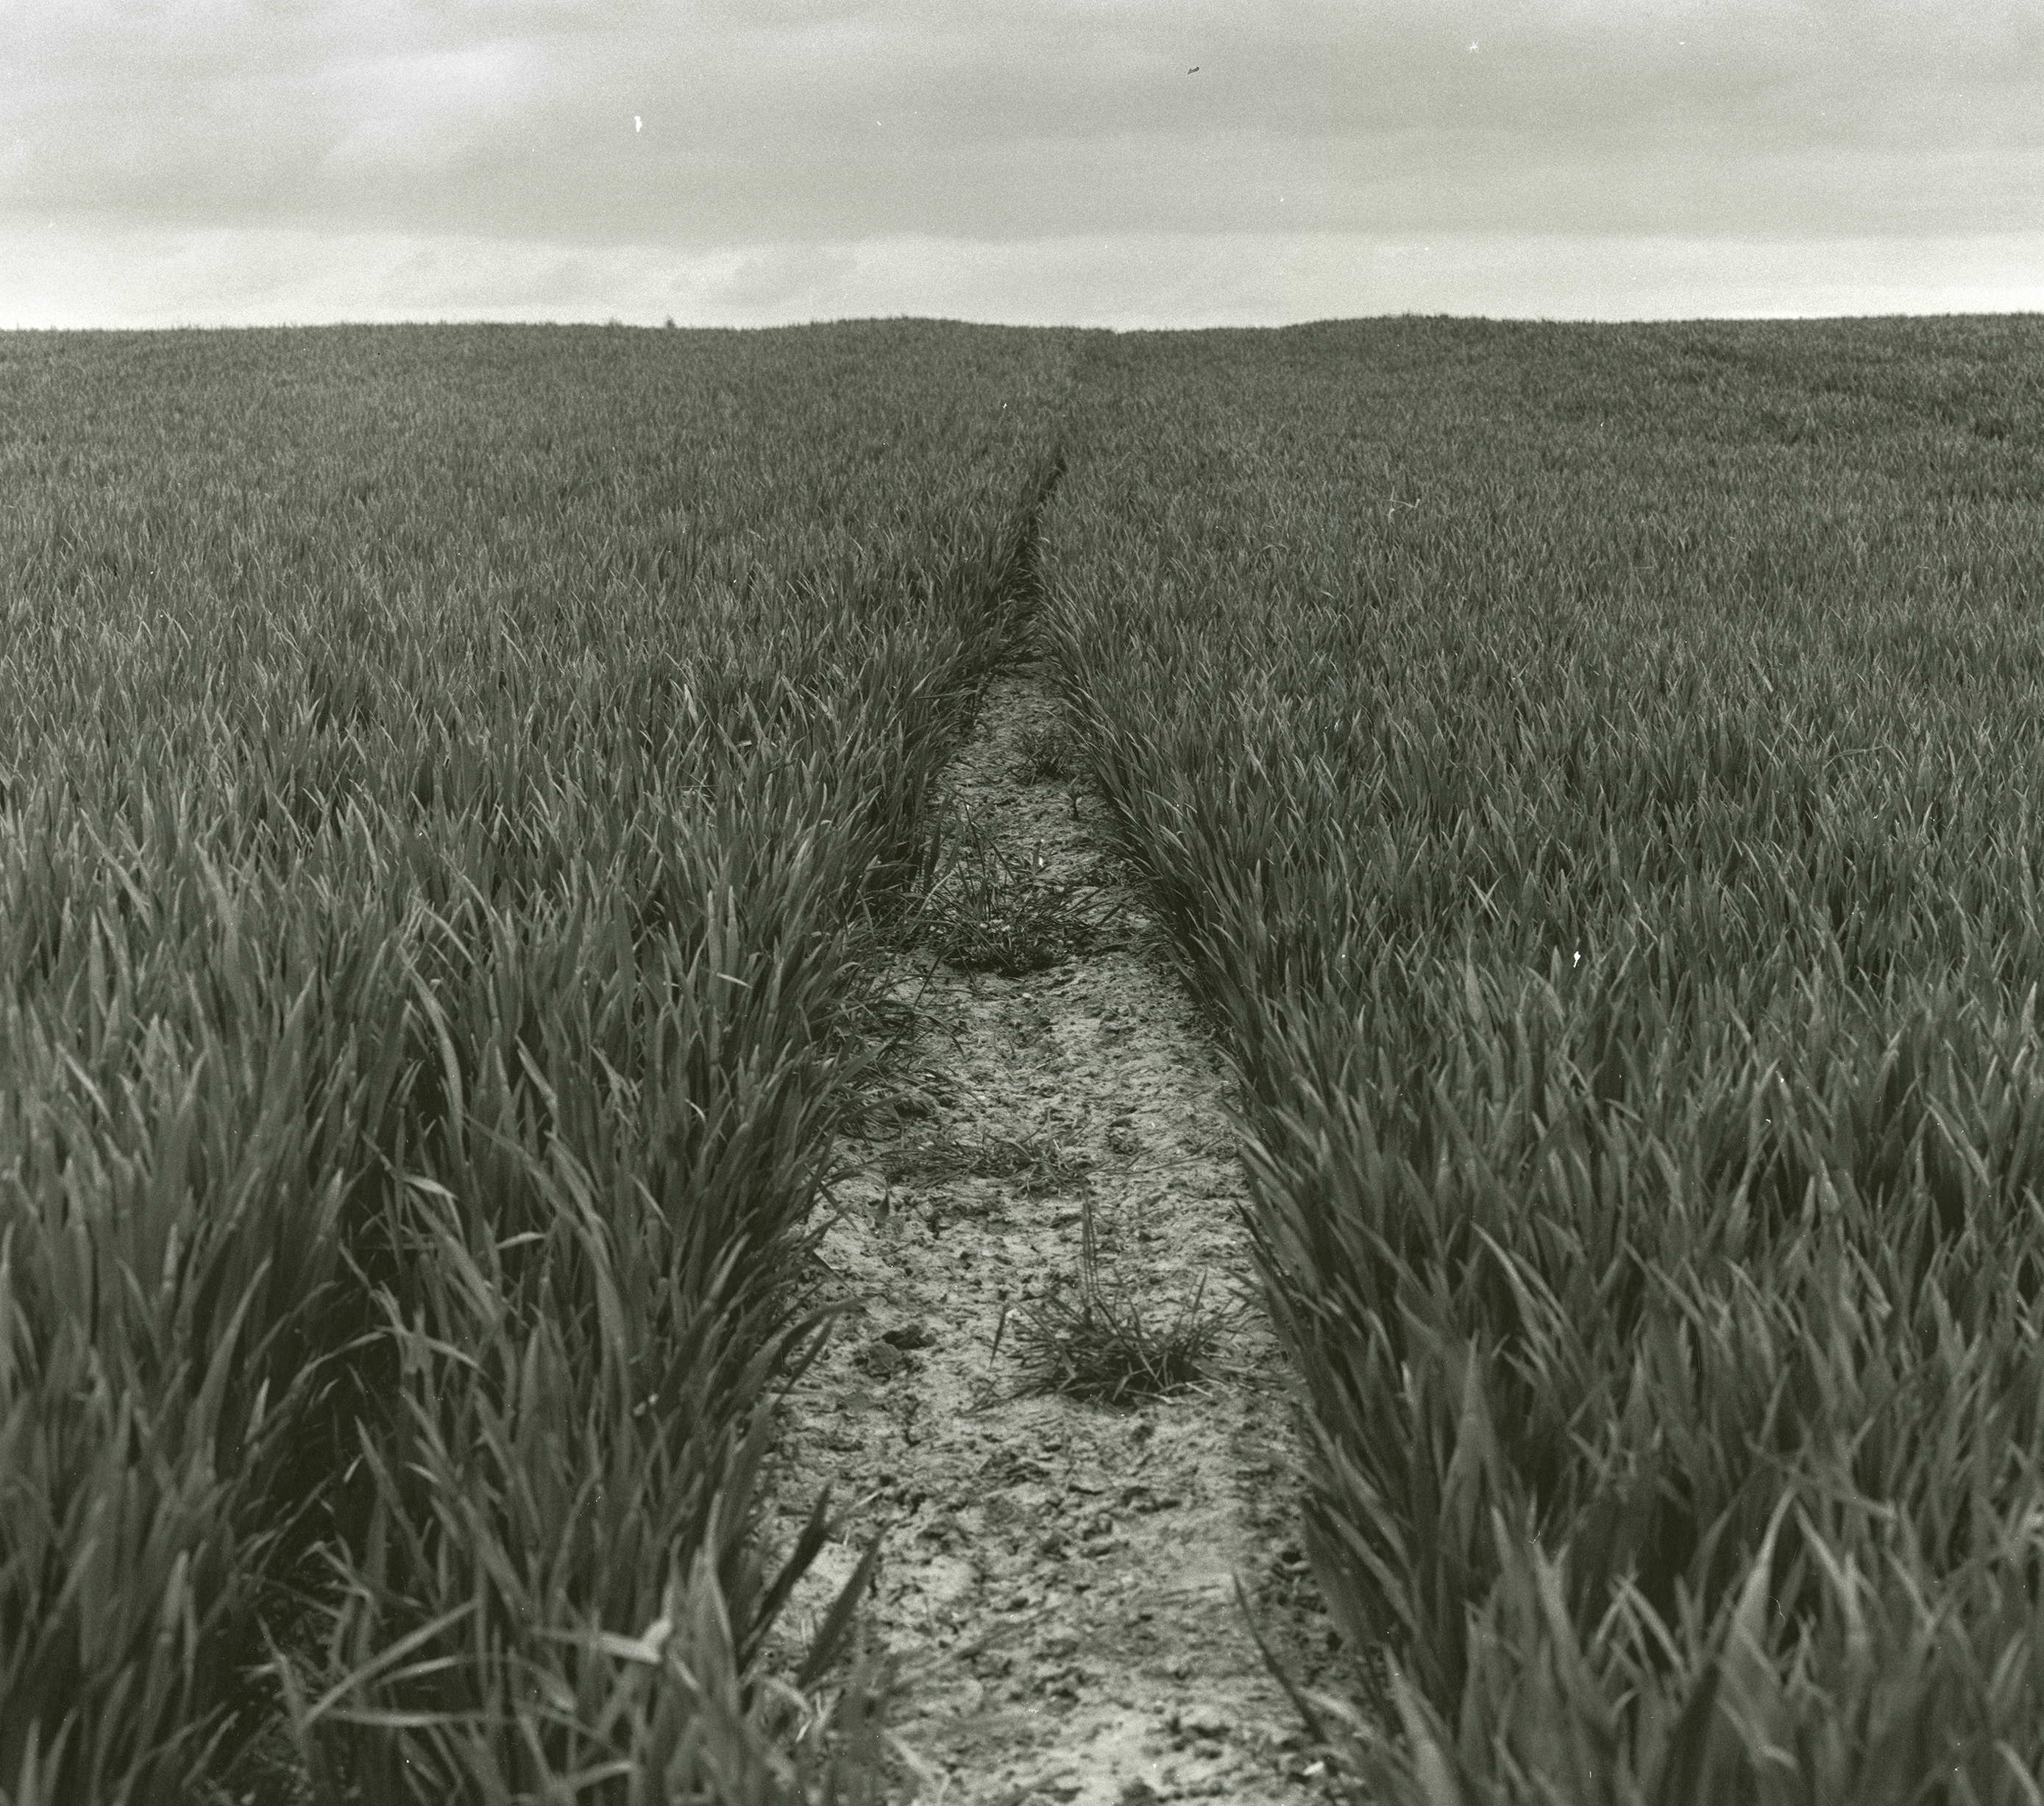 'The Open Fields' - Medium Format Photog